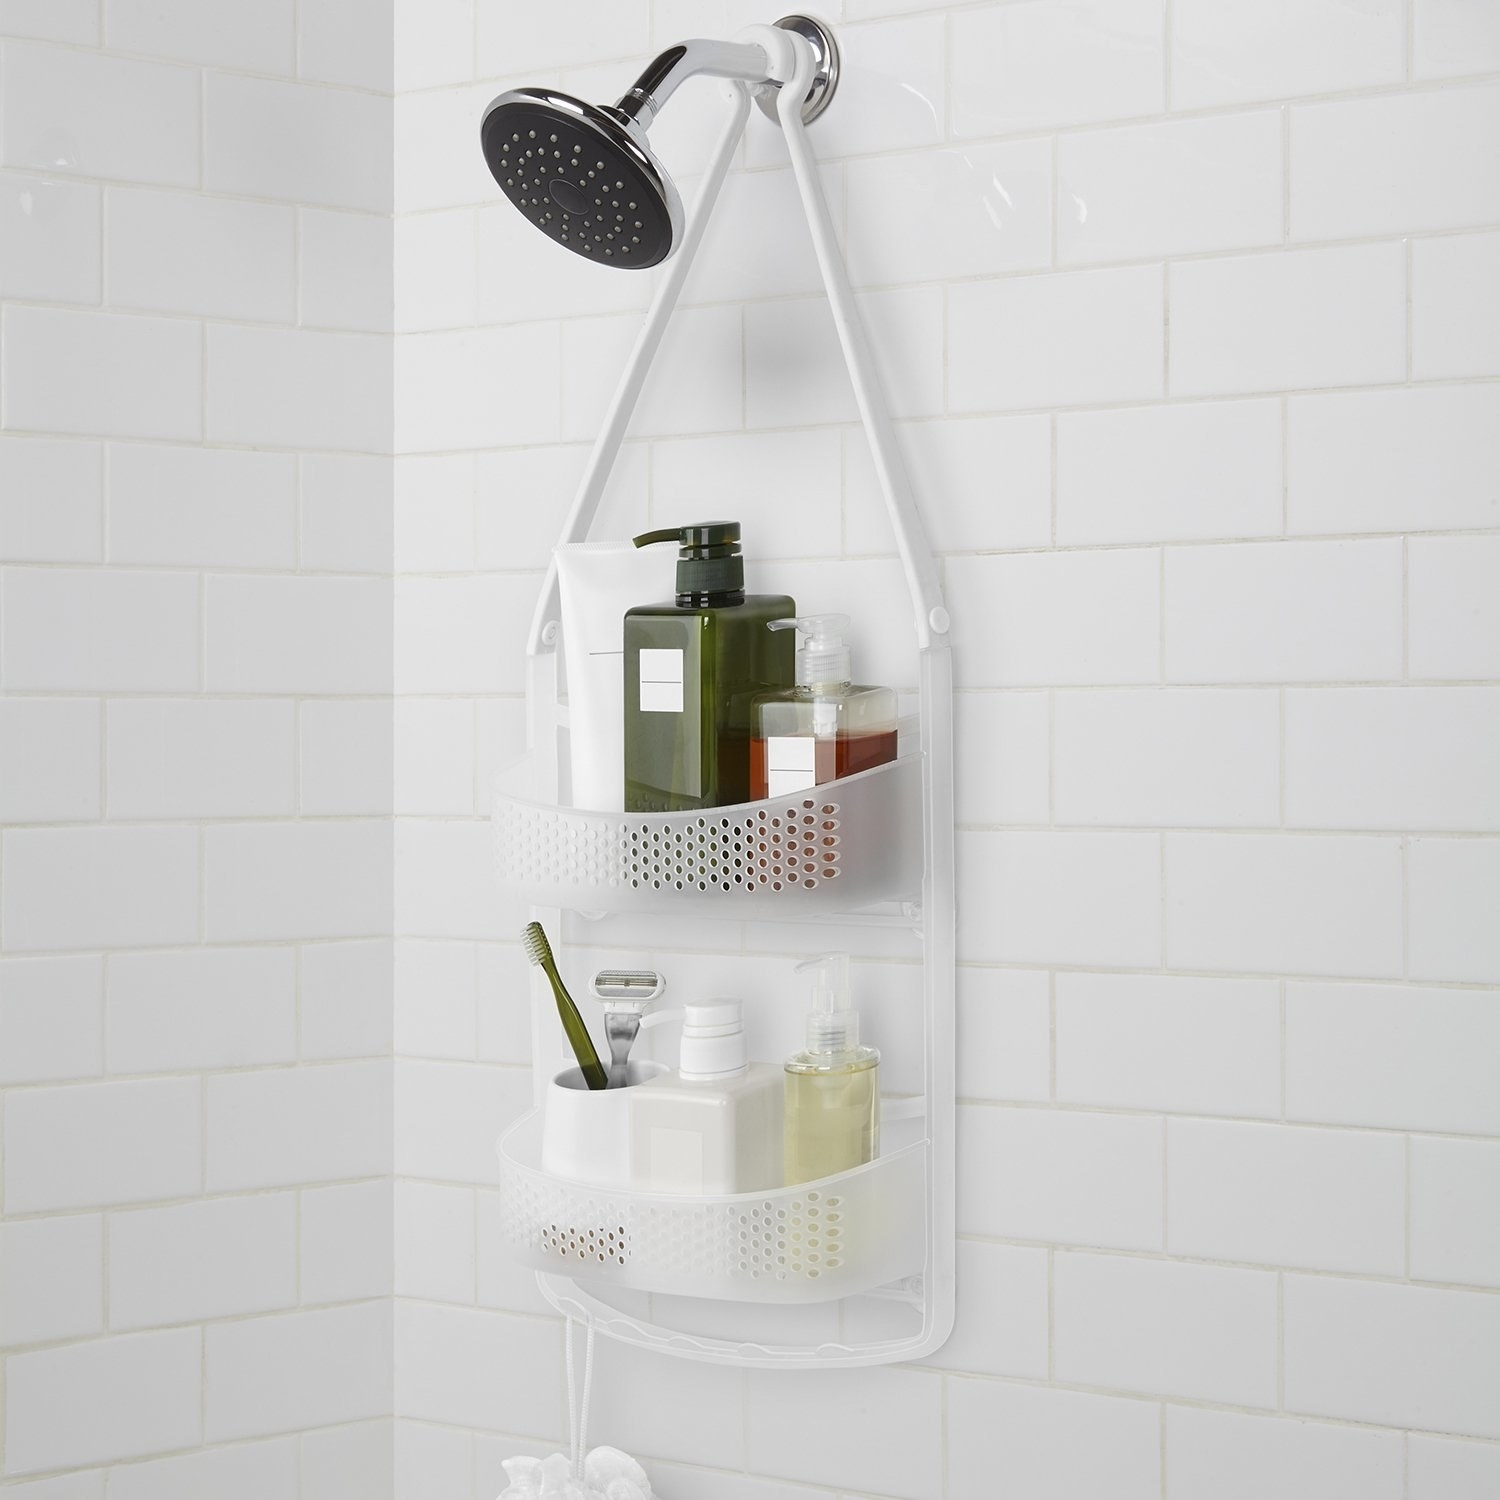 A shower caddy with toiletries in it. It's hung up on a shower head.